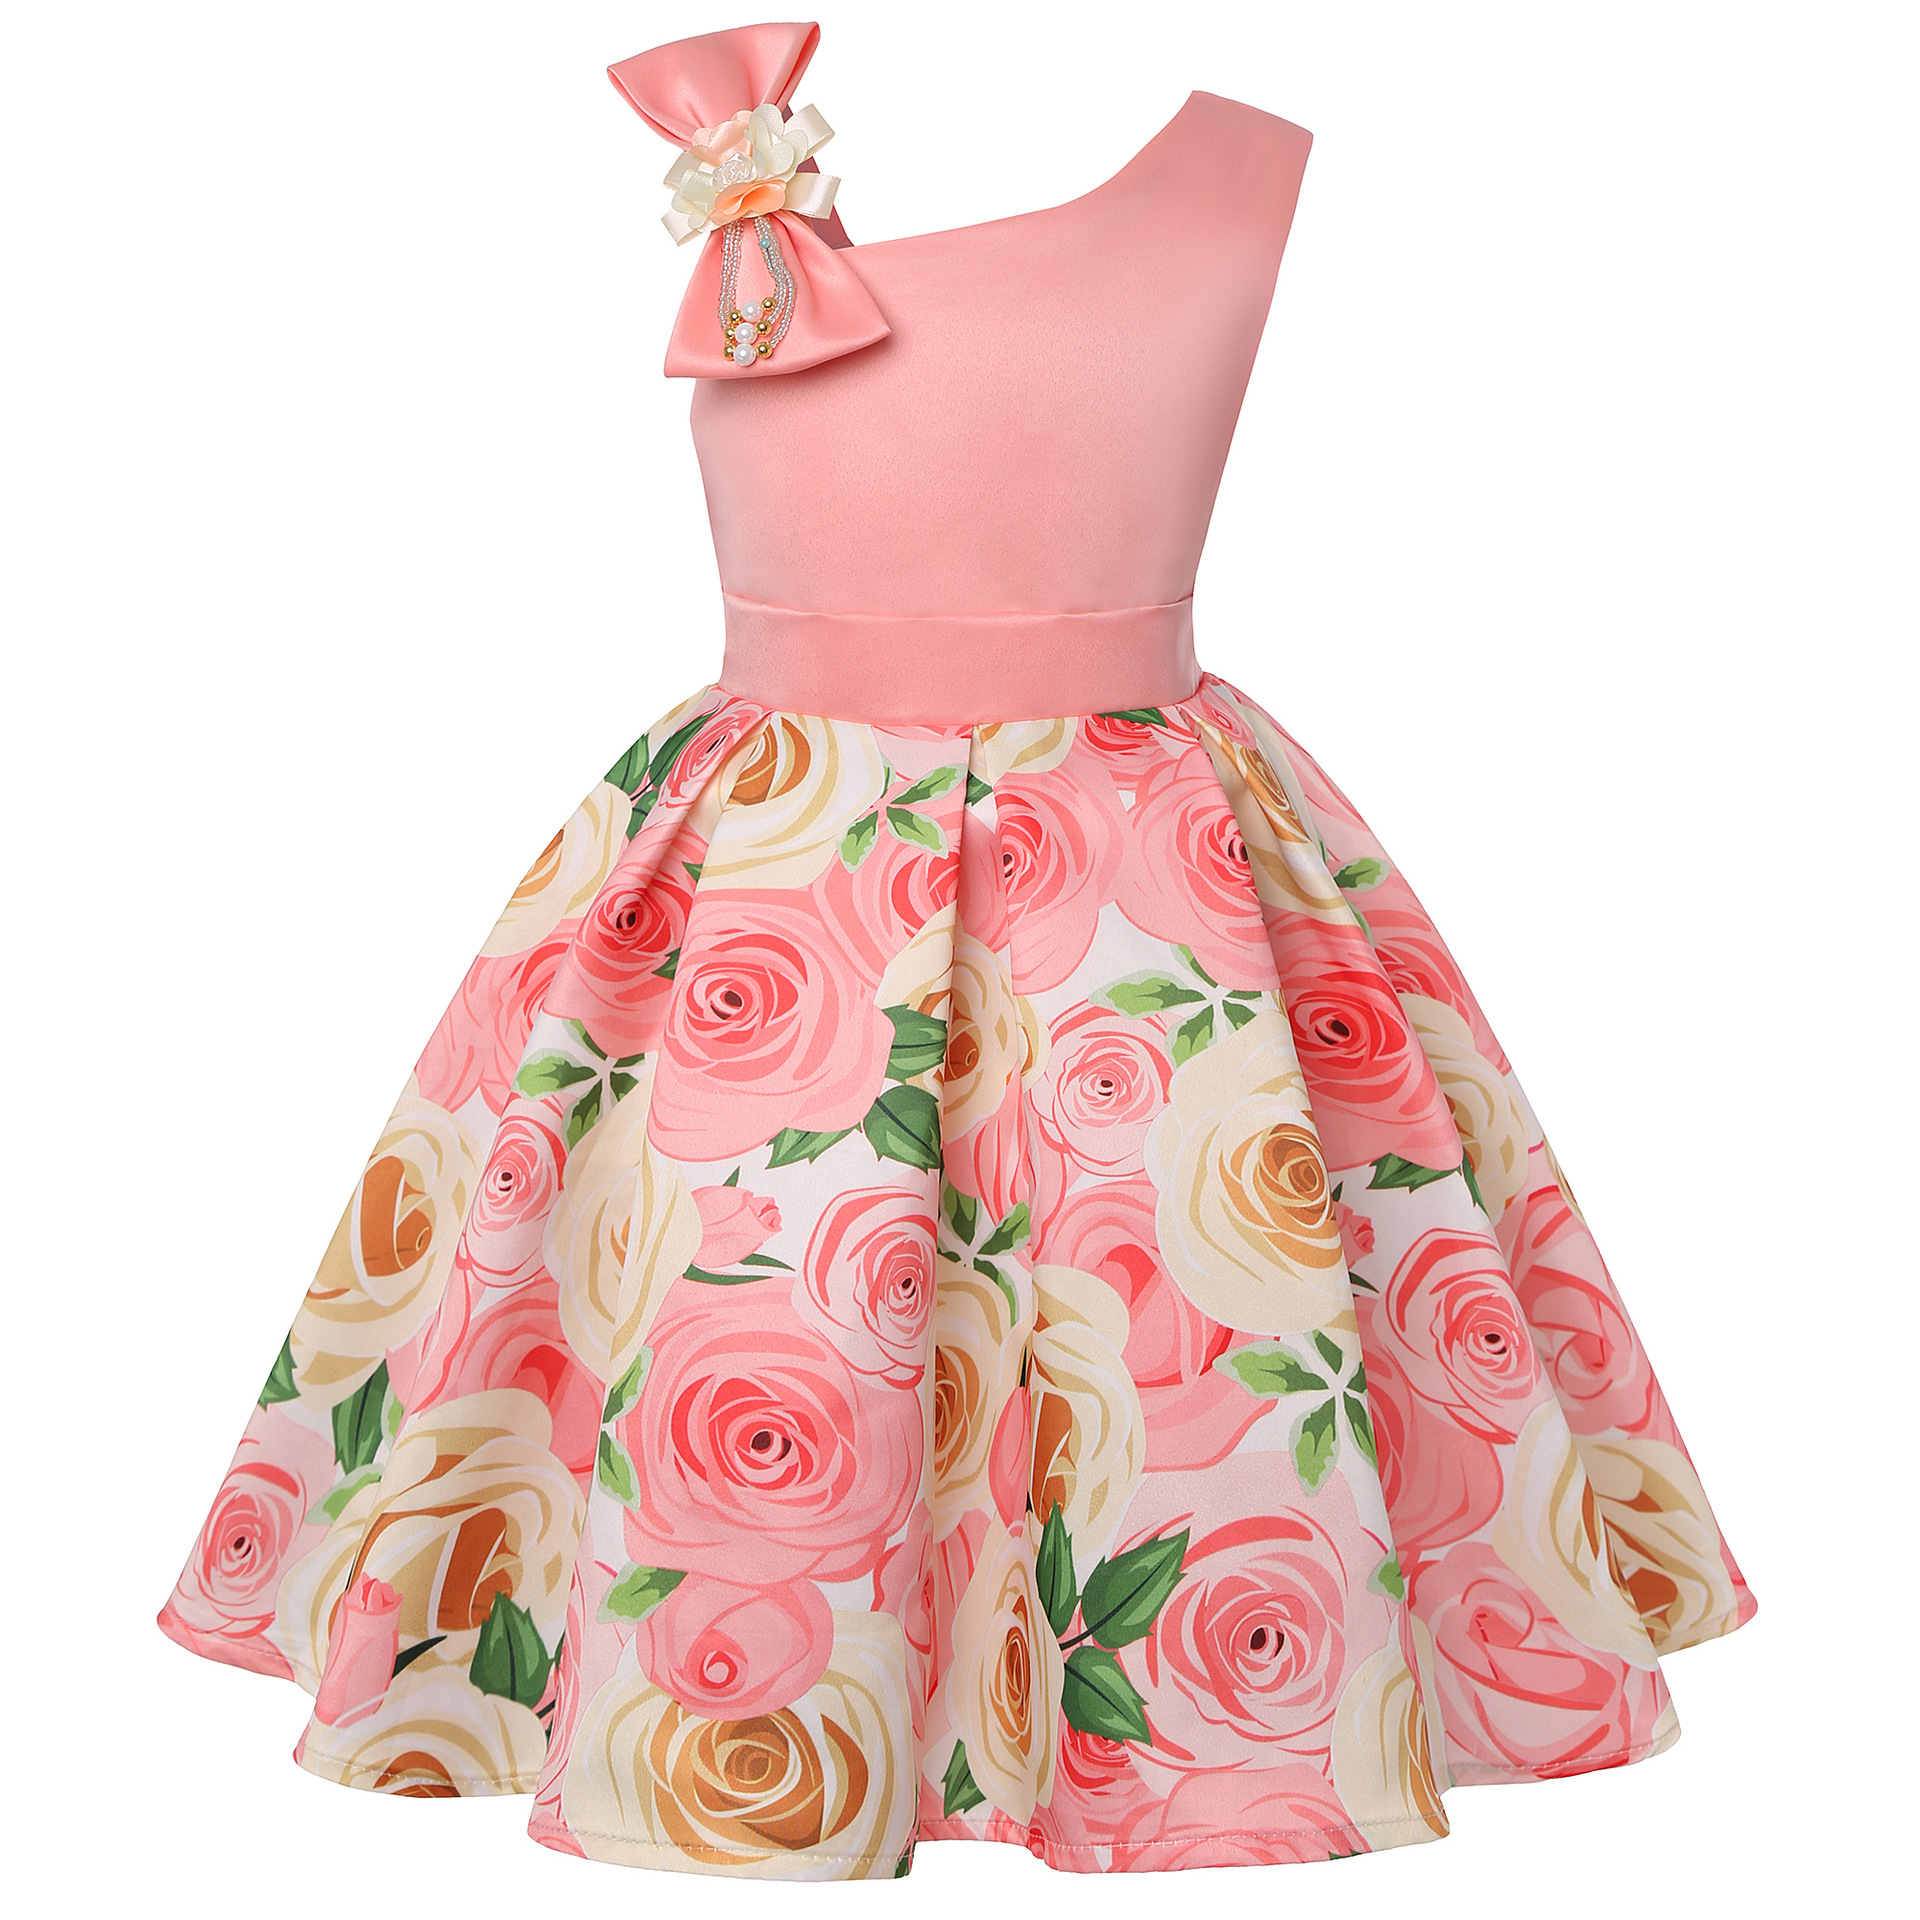 Girls Dress For Kids Clothes Flower One-shoulder Pageant Birthday Wedding Party Princess Children Dress 3 4 5 6 7 8 9 years 6